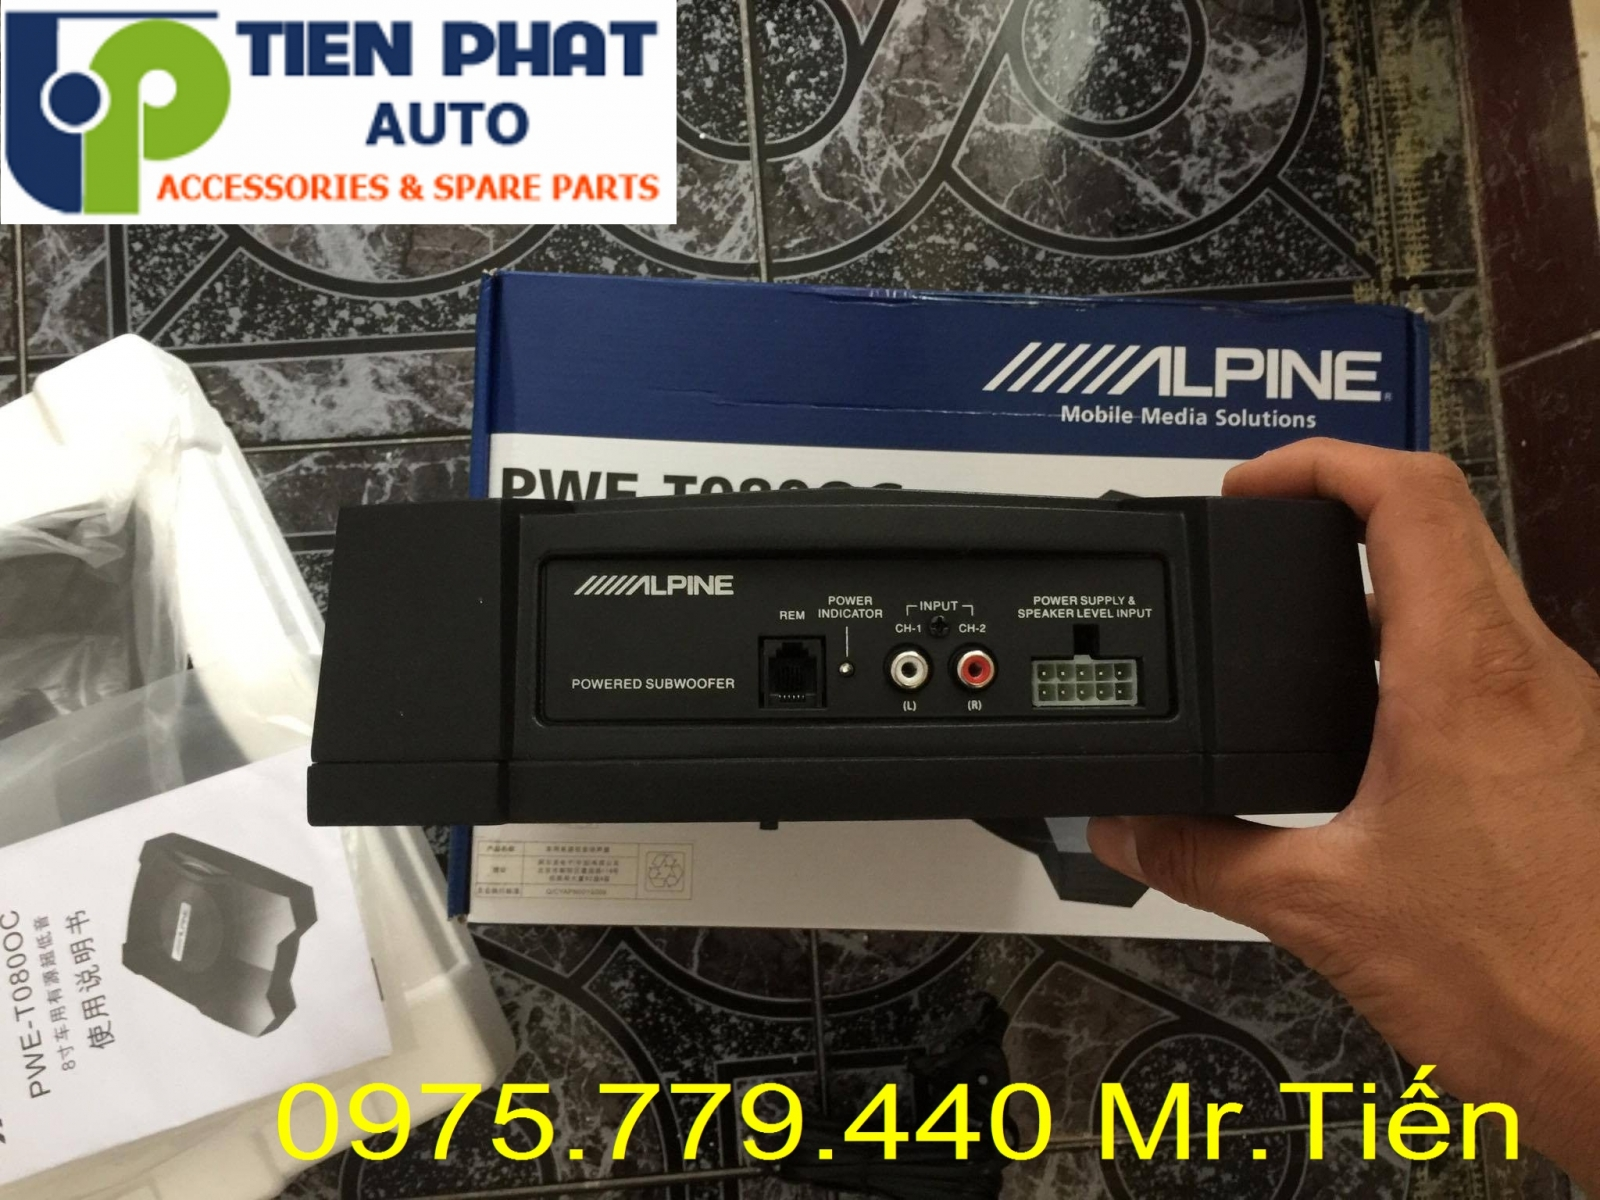 loa sub dien alpine pwe-t0800c am thanh hay chuan cho toyota camry